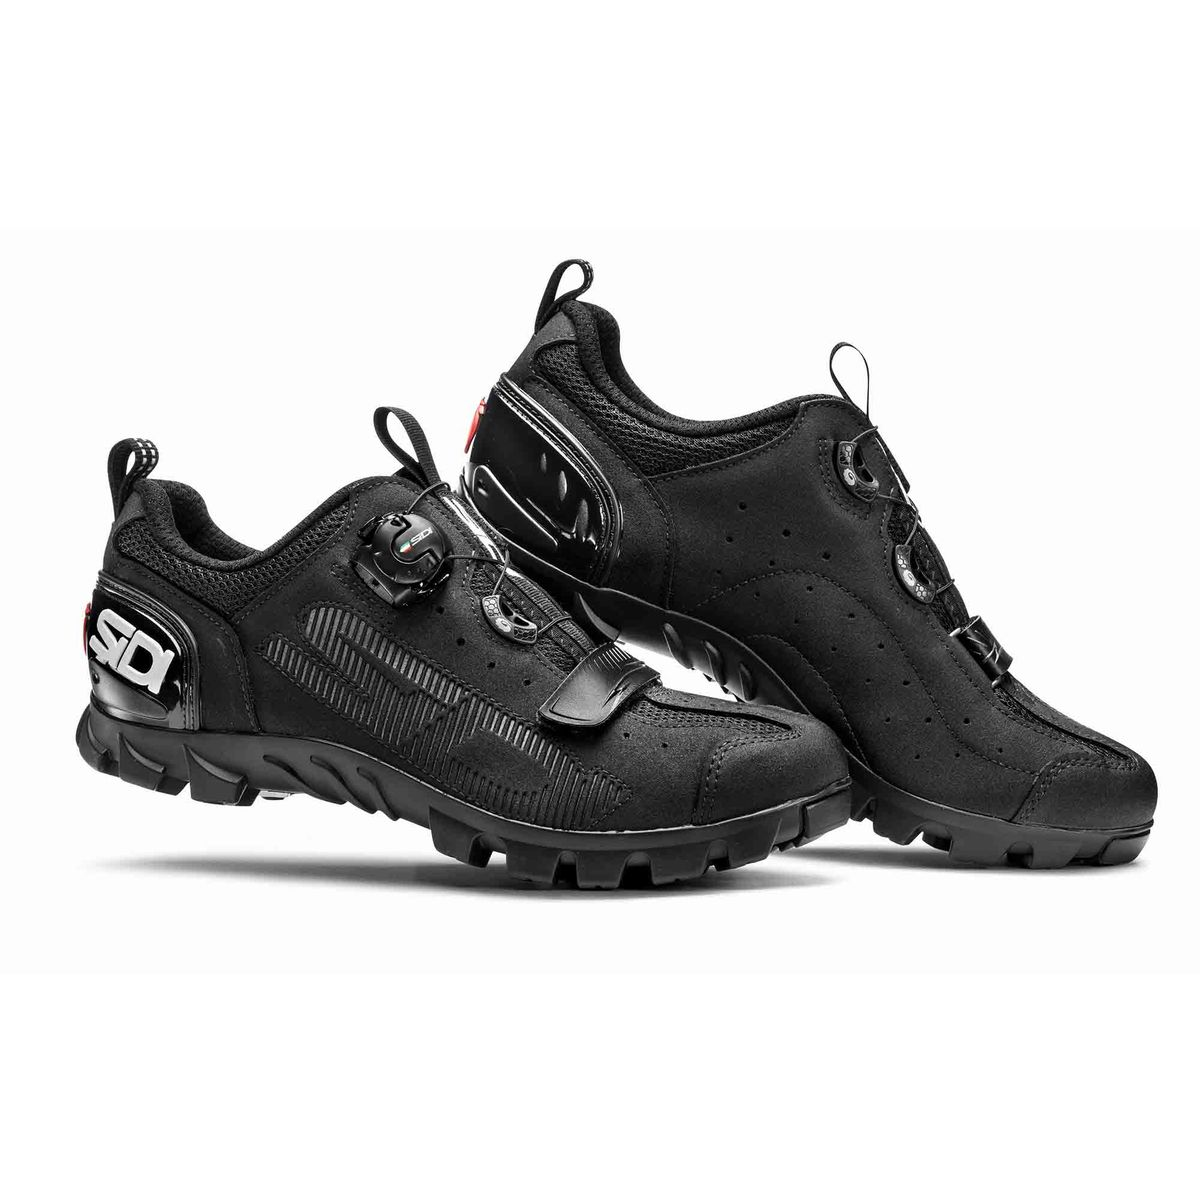 SD15 MTB/touring shoes